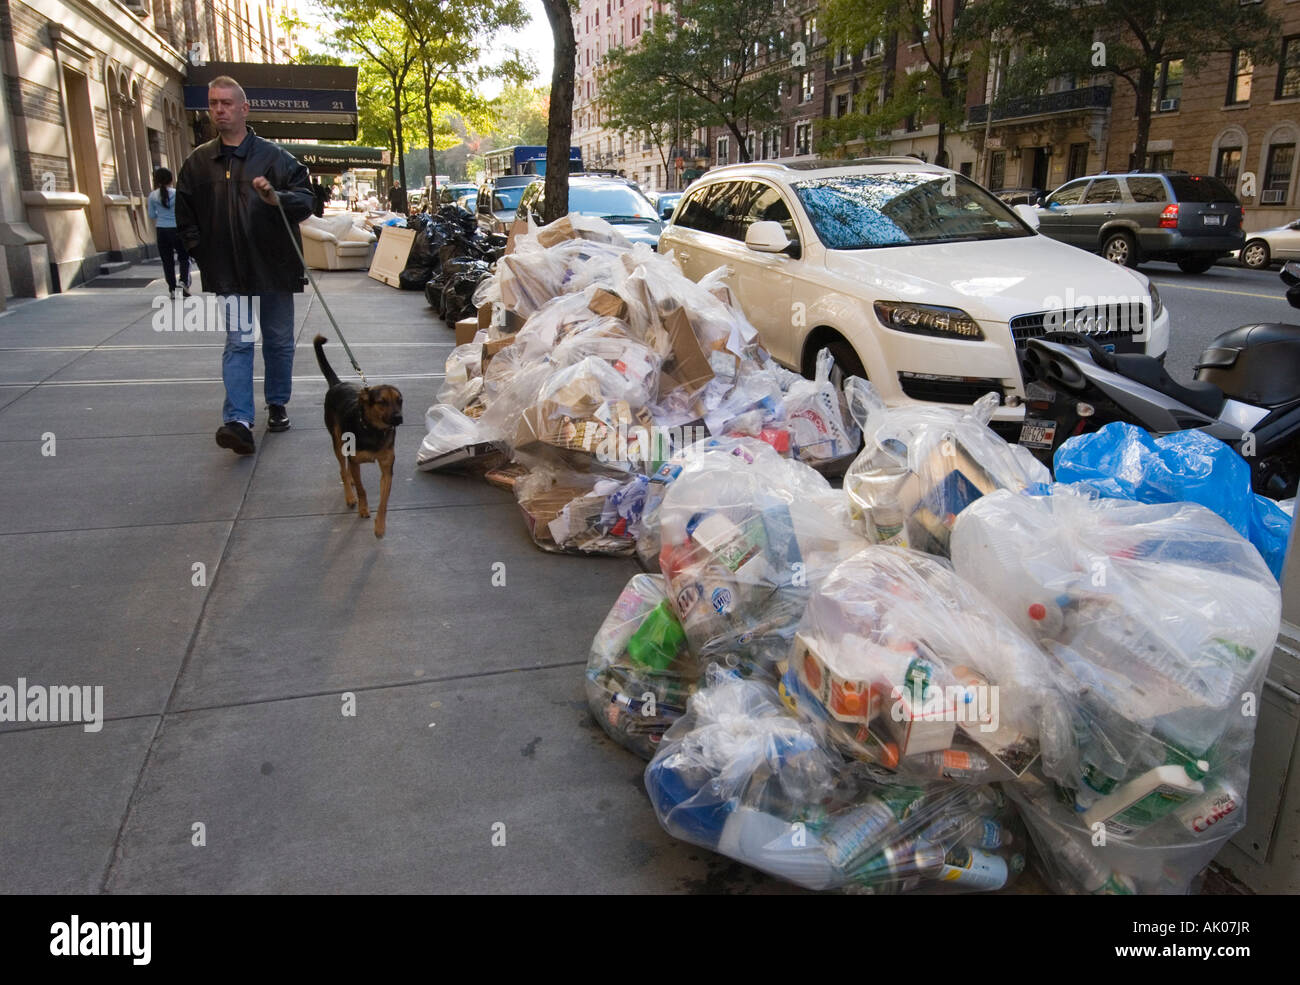 Bags of Recyclables left on the Curb for Pickup on Manhattan s Upper West Side - Stock Image